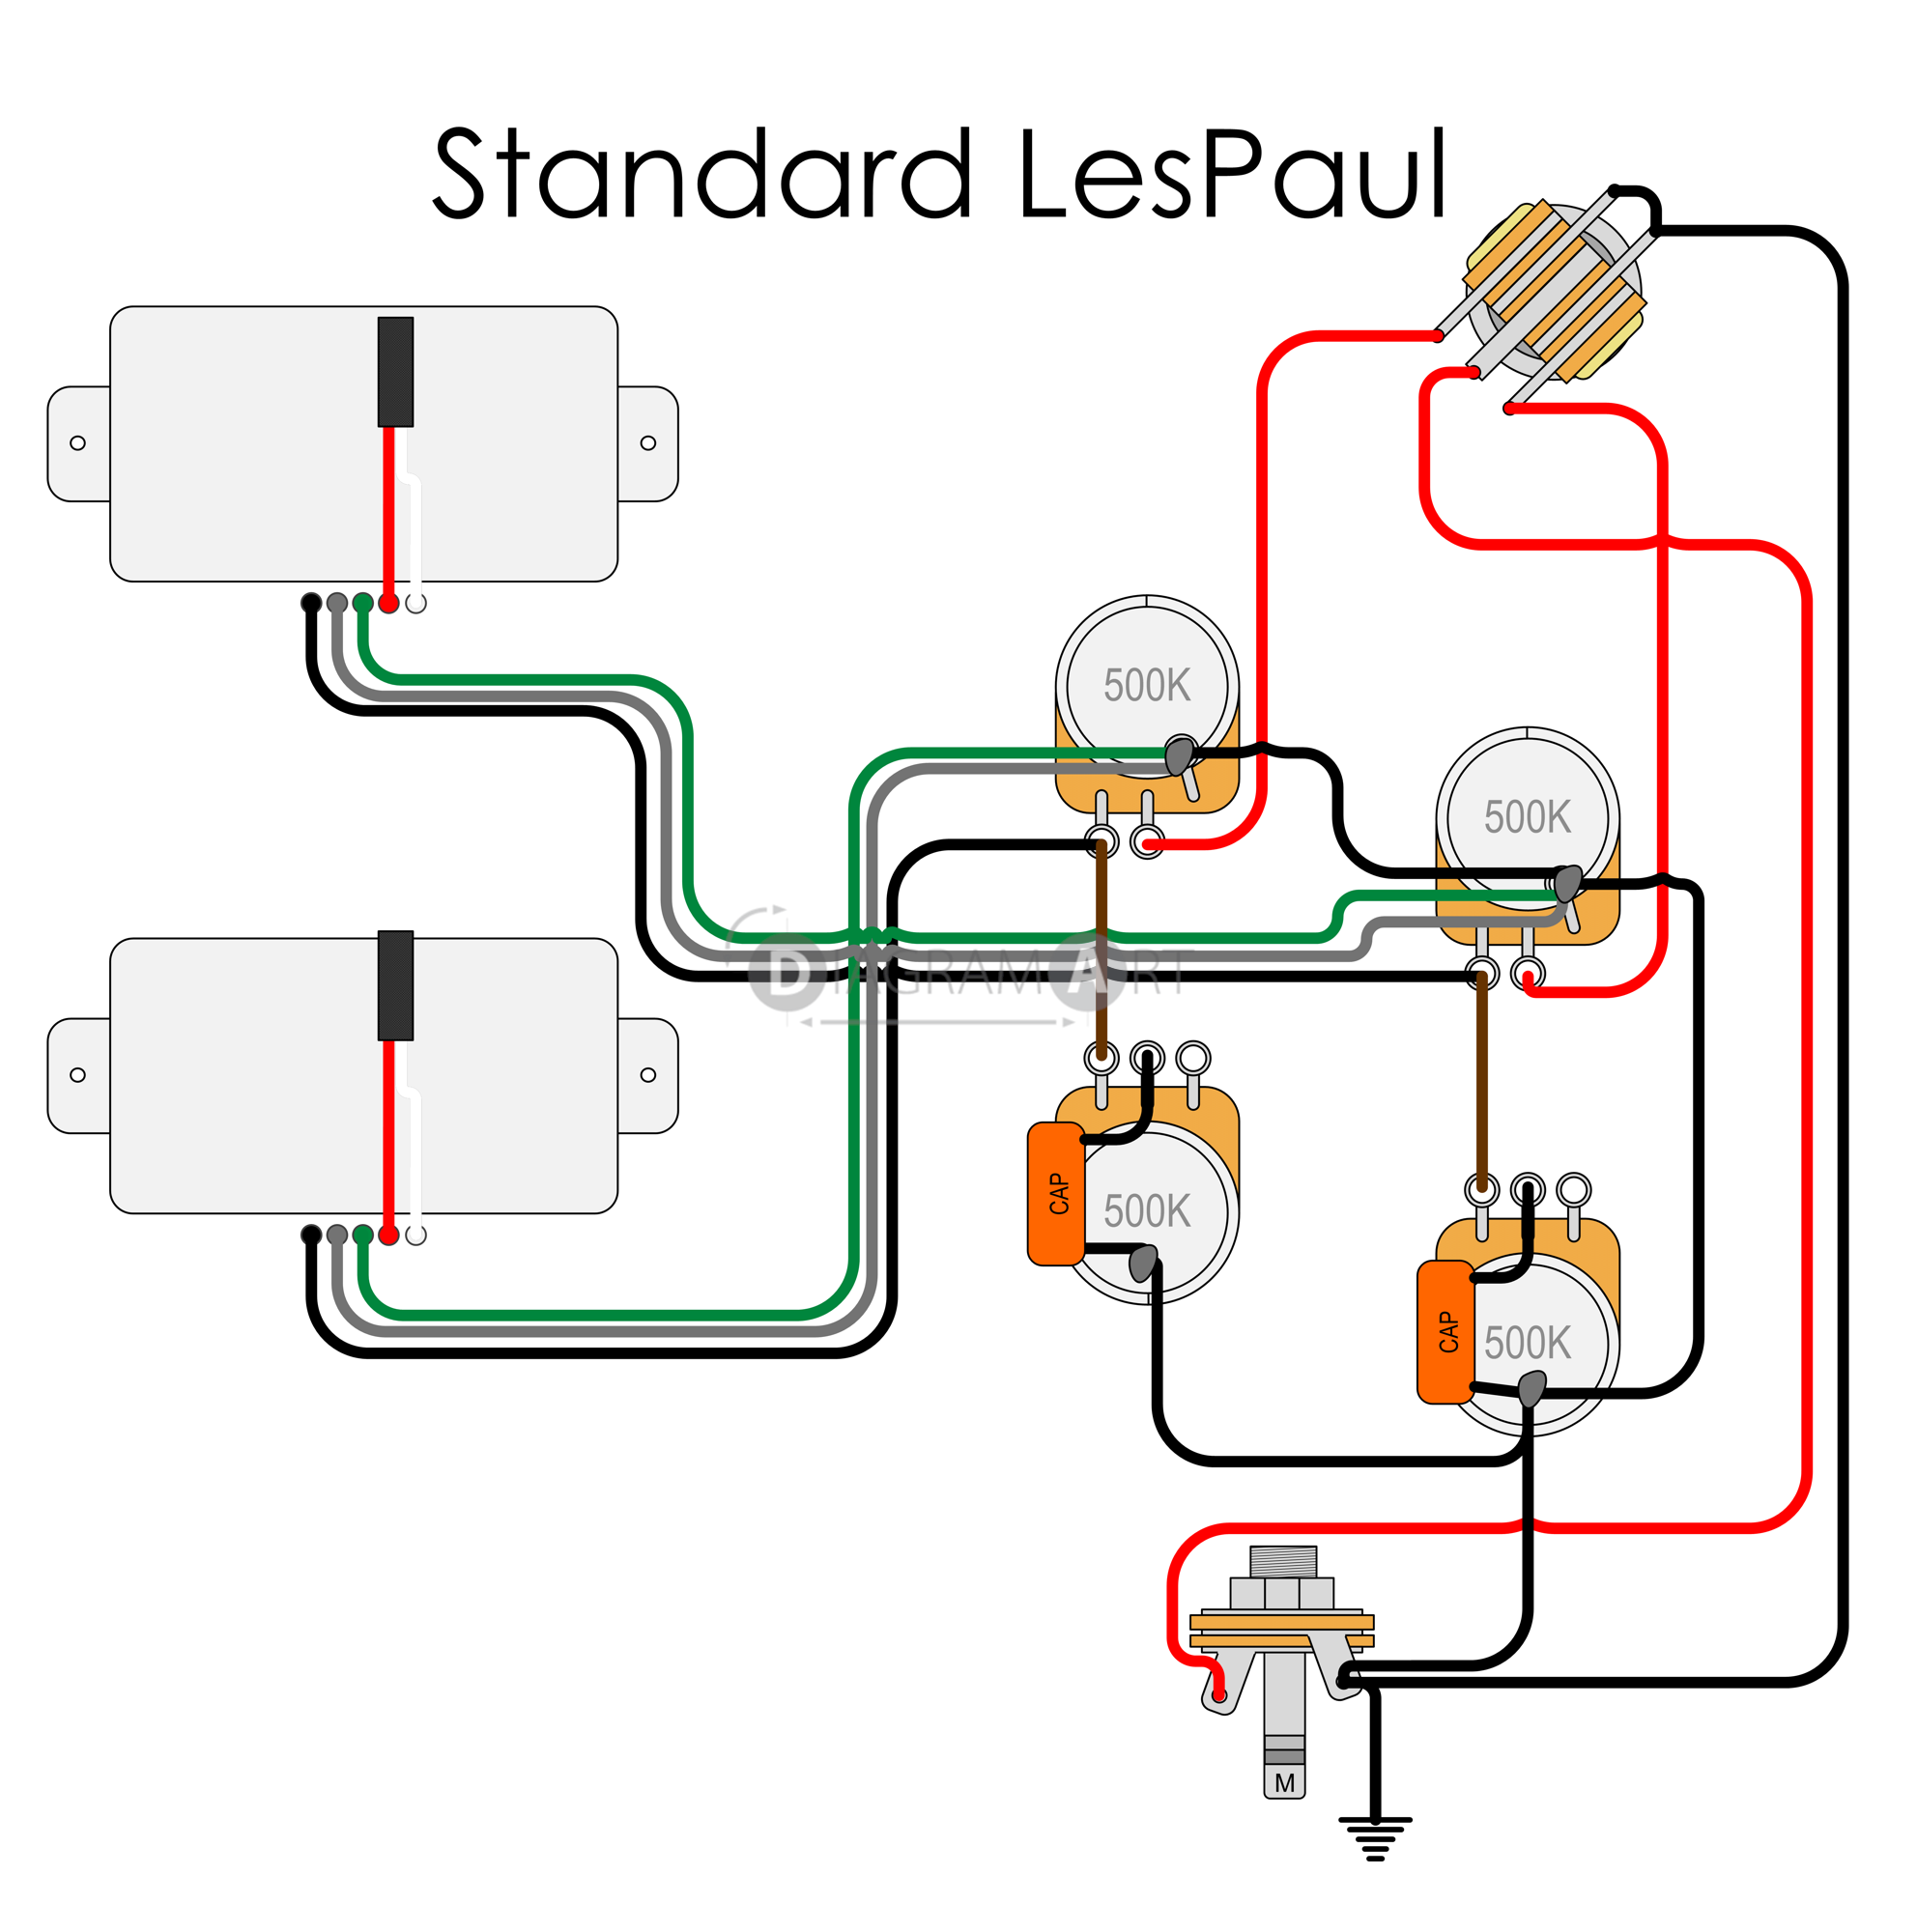 Wiring Diagram For Epiphone Les Paul Standard - Wiring Diagram